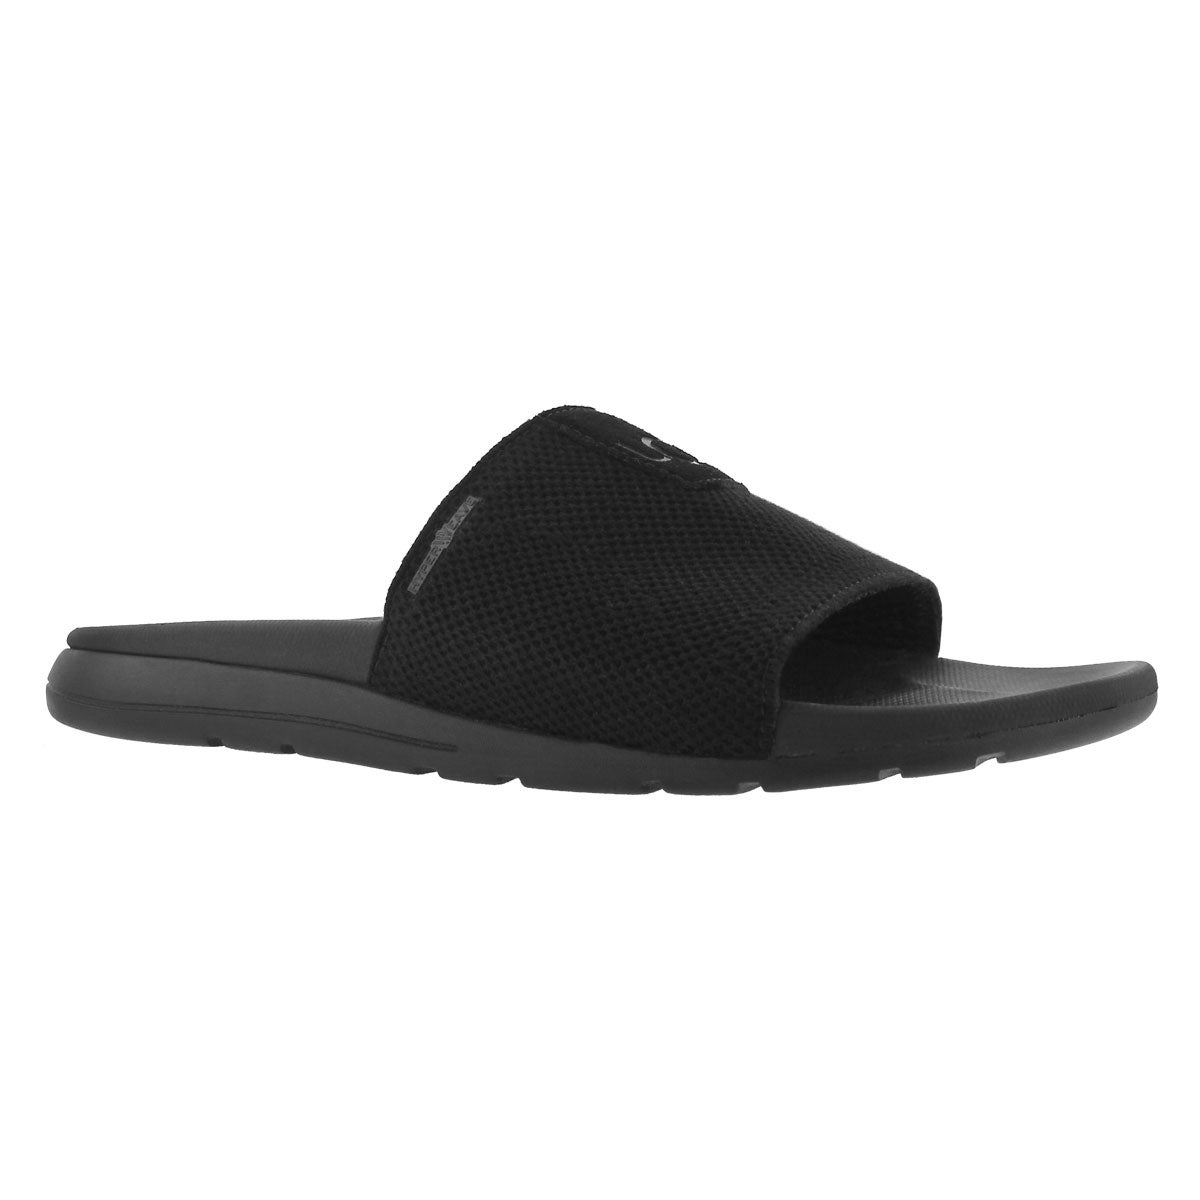 Mns Xavier HyperWeave black casual slide